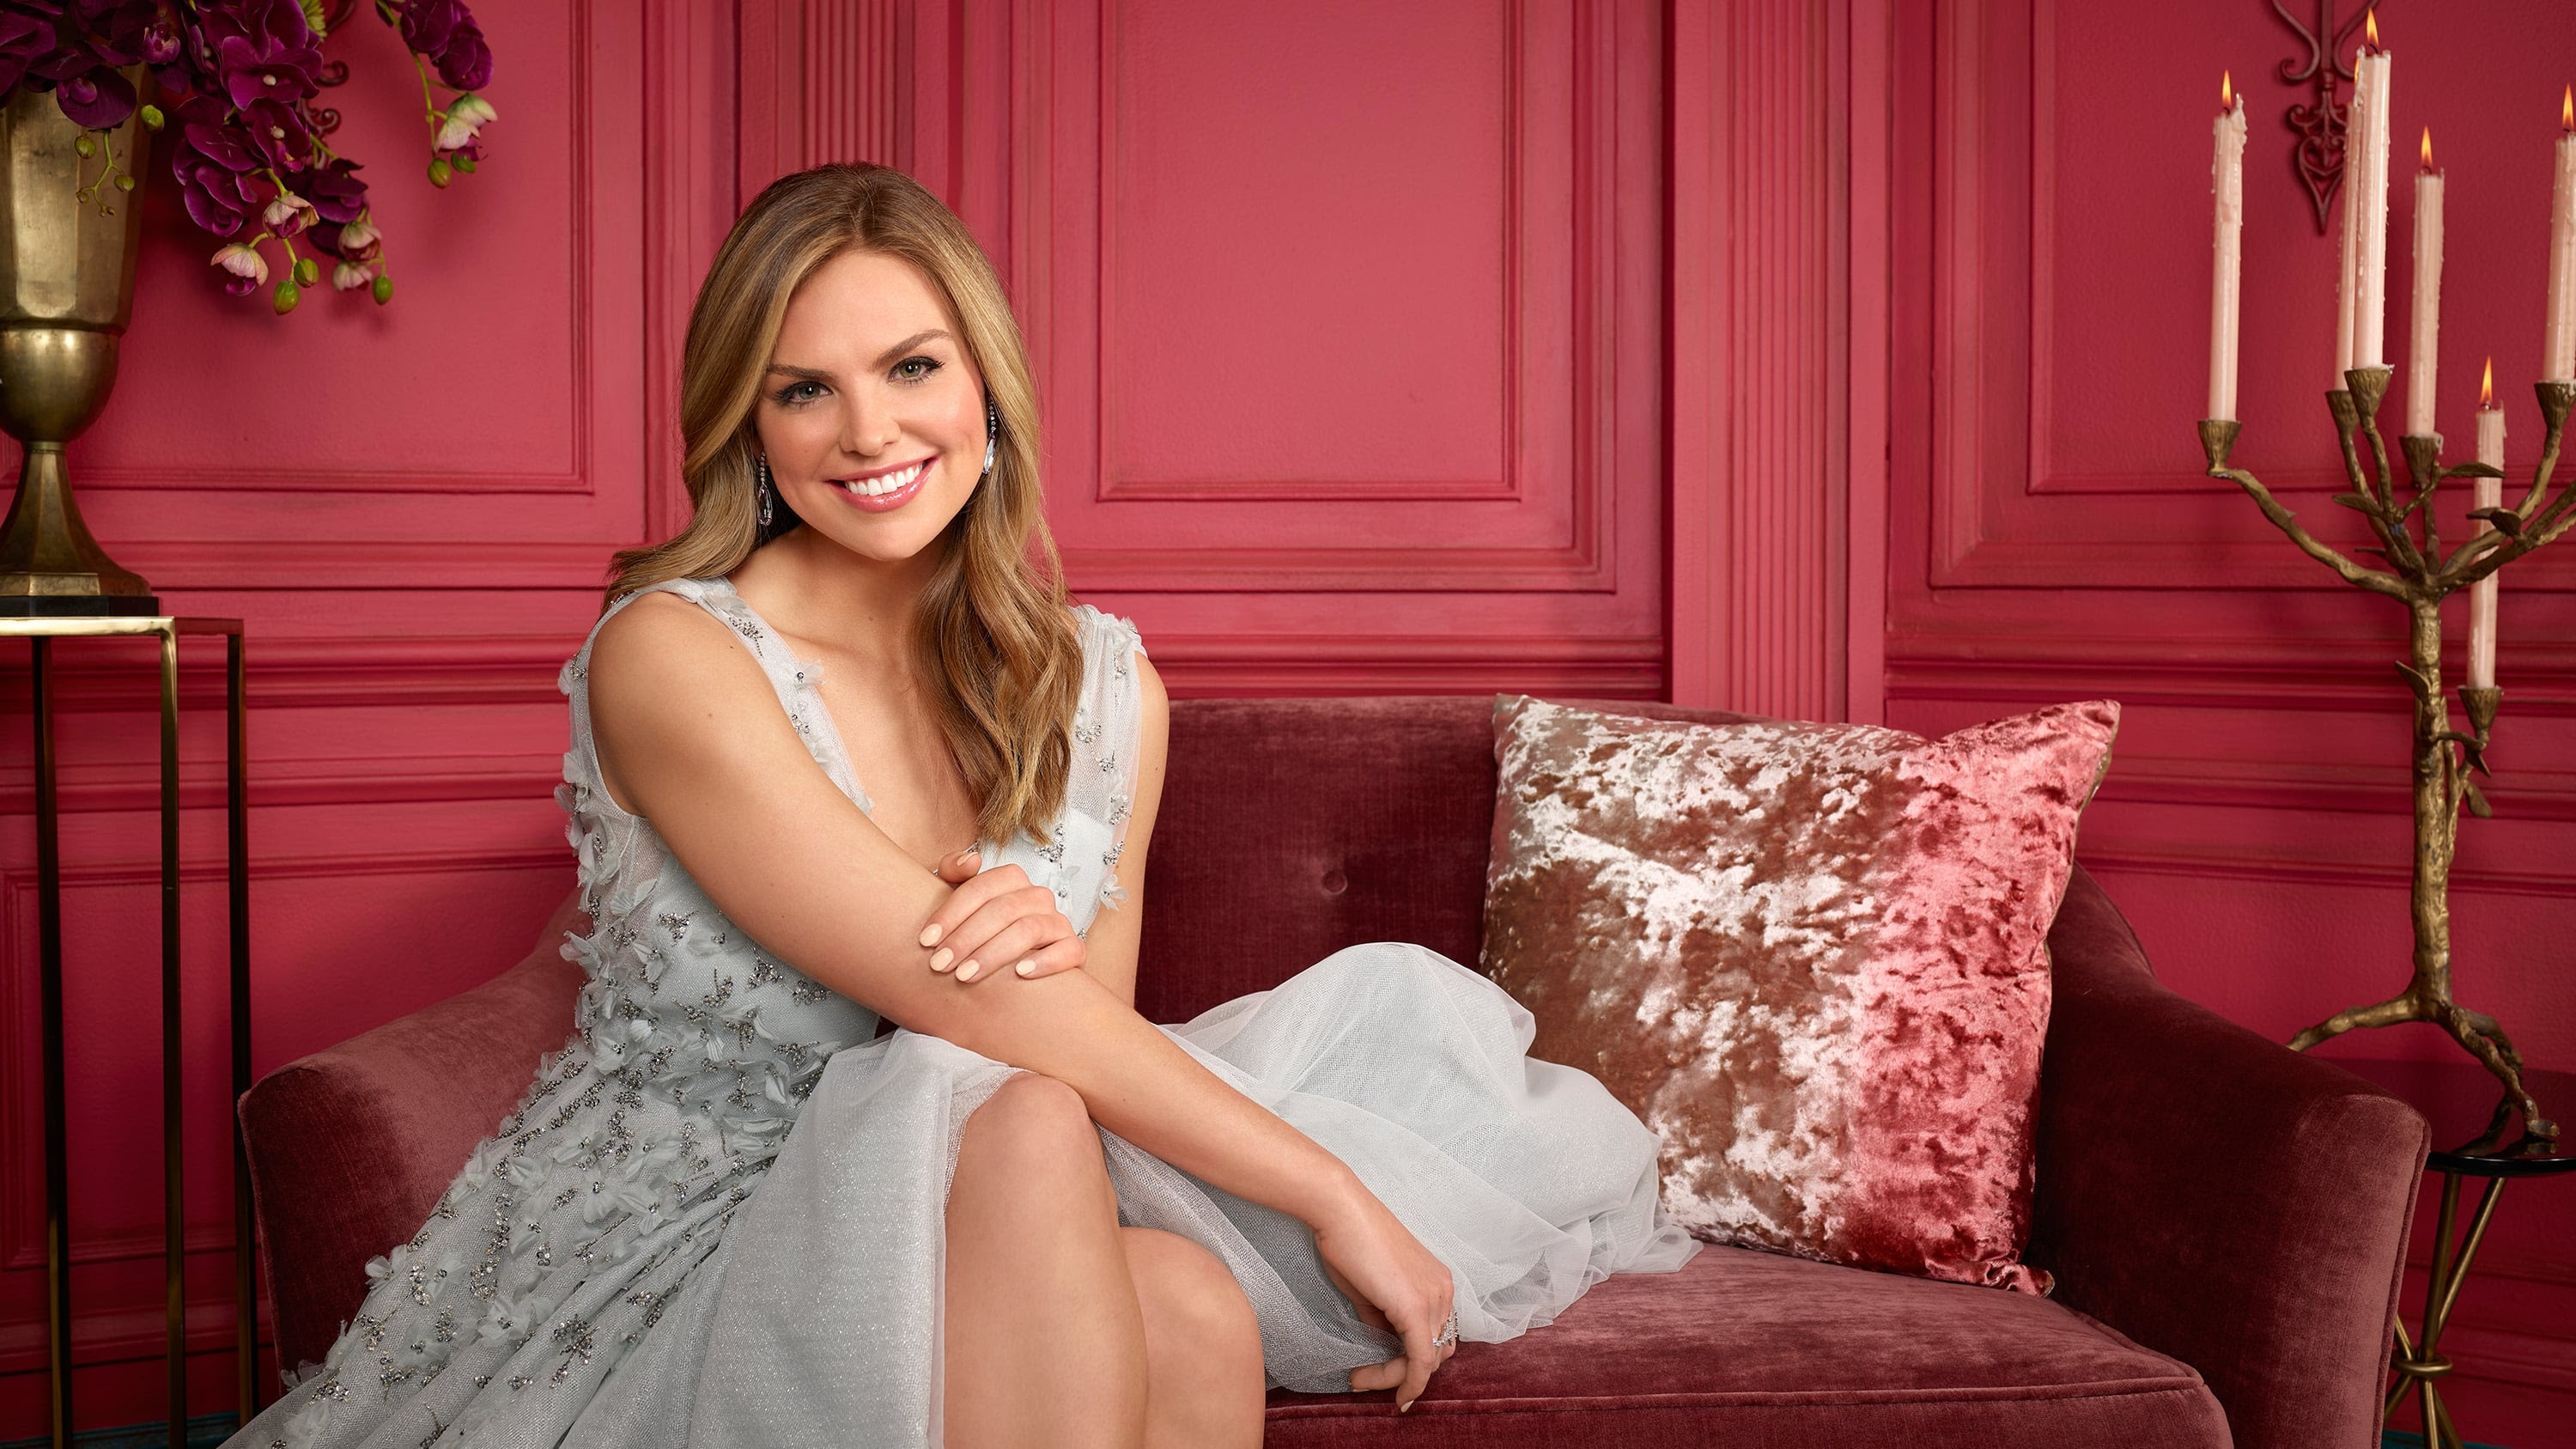 THE BACHELORETTE Season 17 Episode 8: Release Date and Time Confirmed